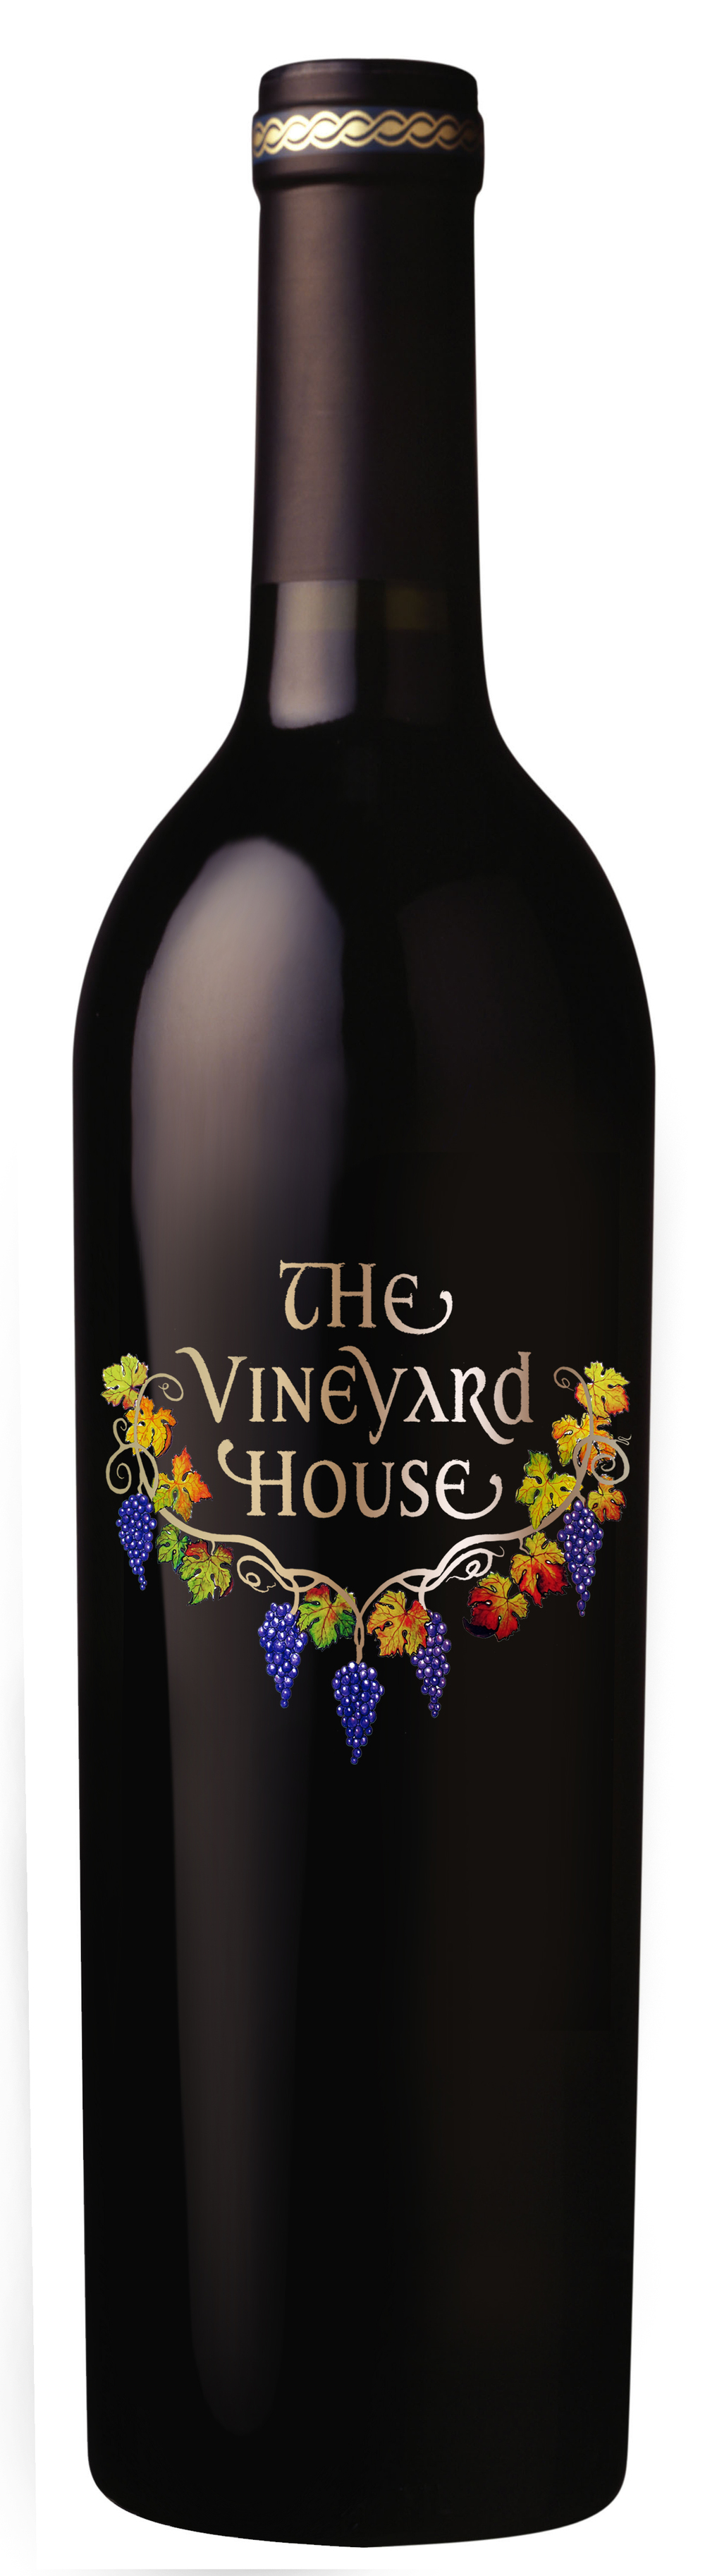 The Vineyard House